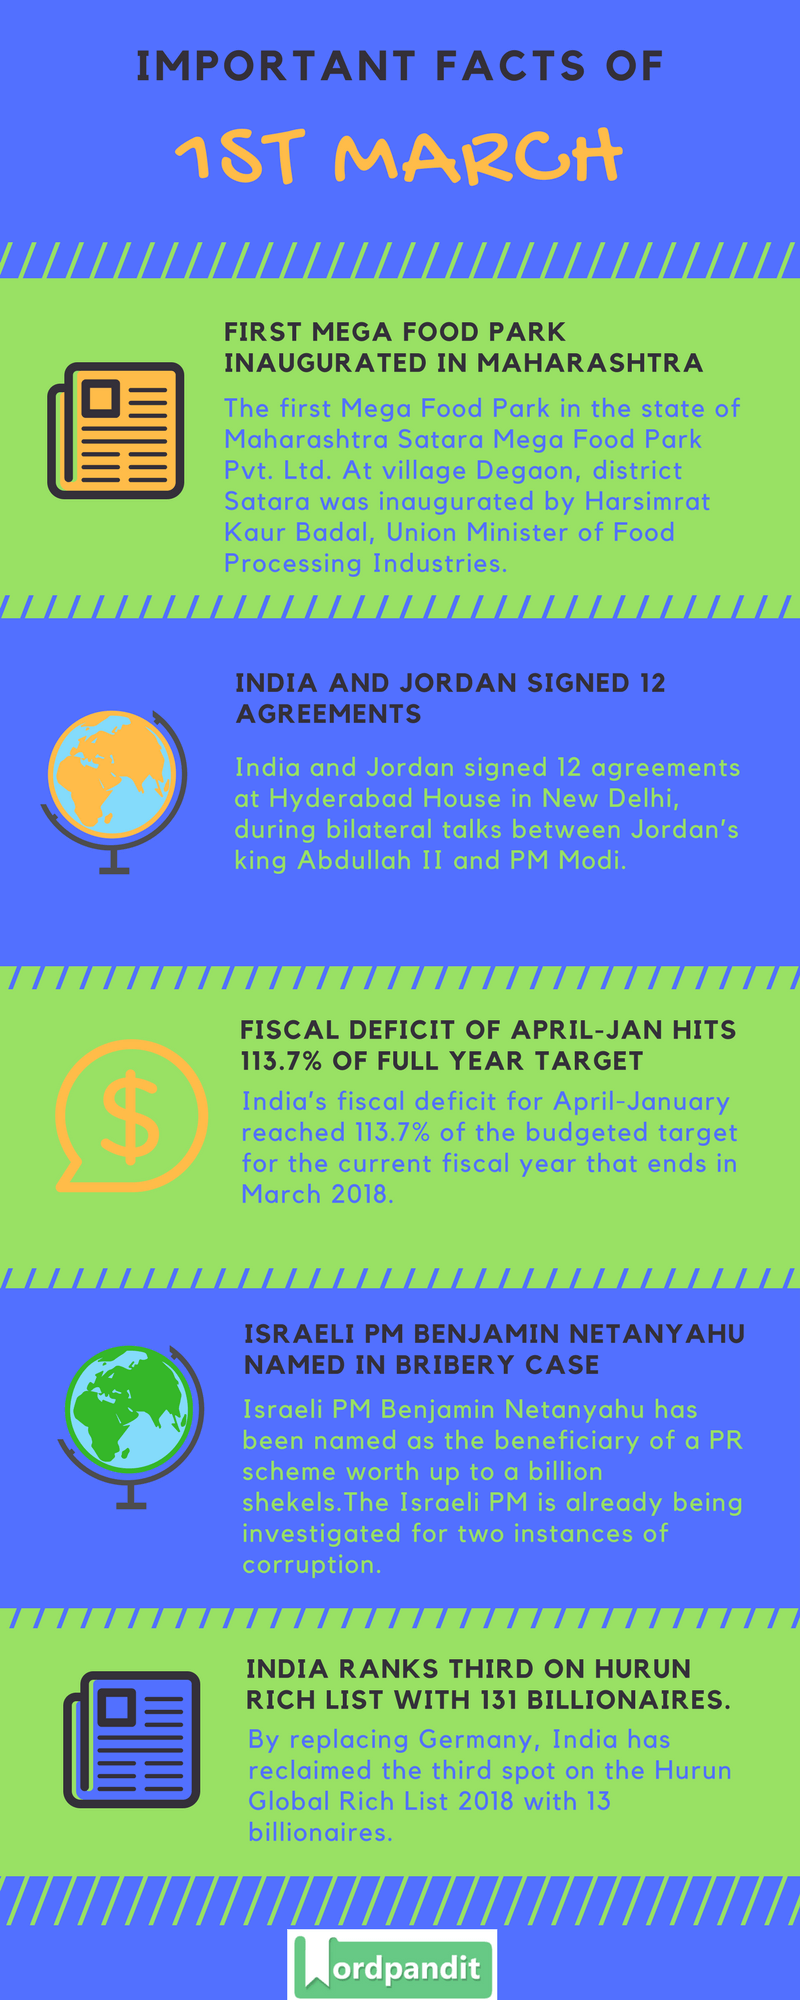 Daily Current Affairs 1 March 2018 Current Affairs Quiz March 1 2018 Current Affairs Infographic